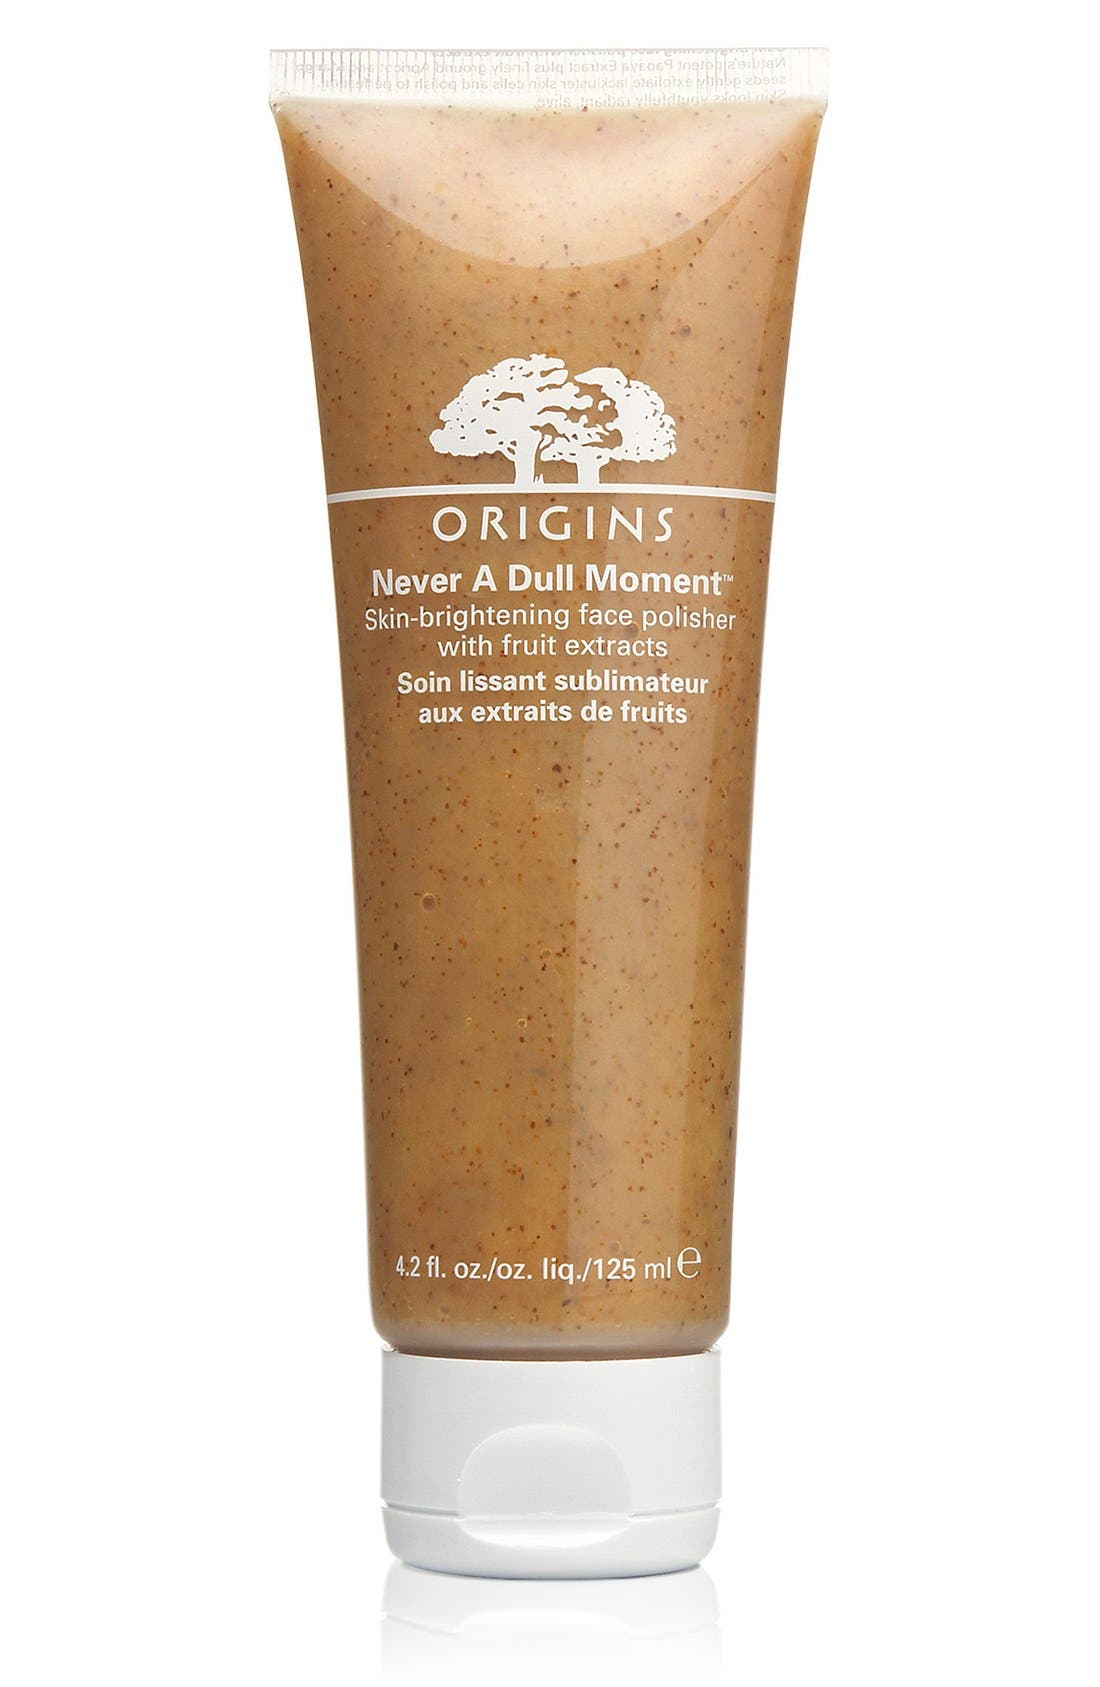 Origins Never A Dull Moment™ Skin-Brightening Face Polisher with Fruit Extracts